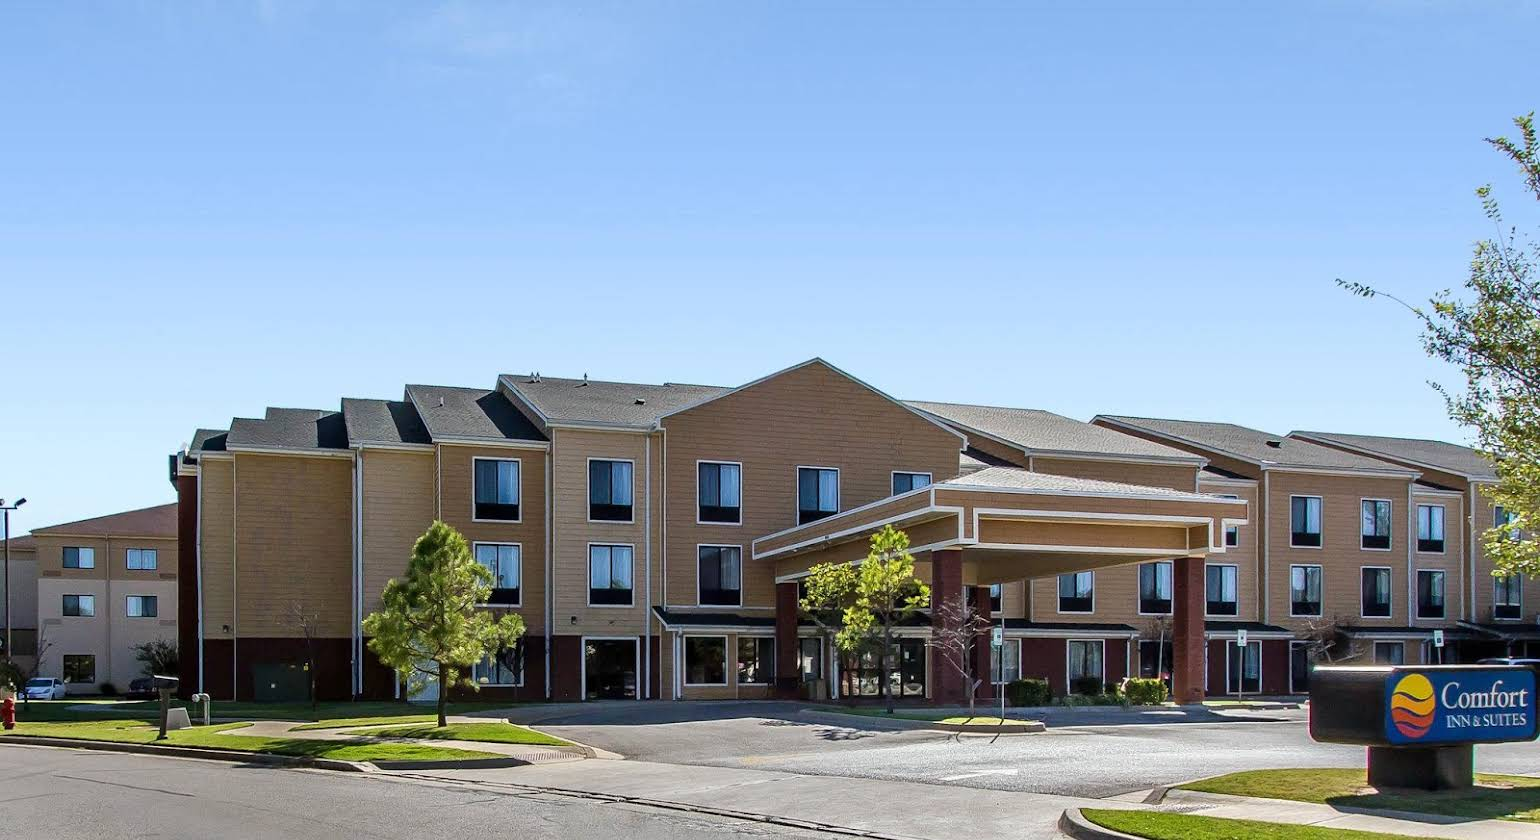 Comfort Inn and Suites Norman